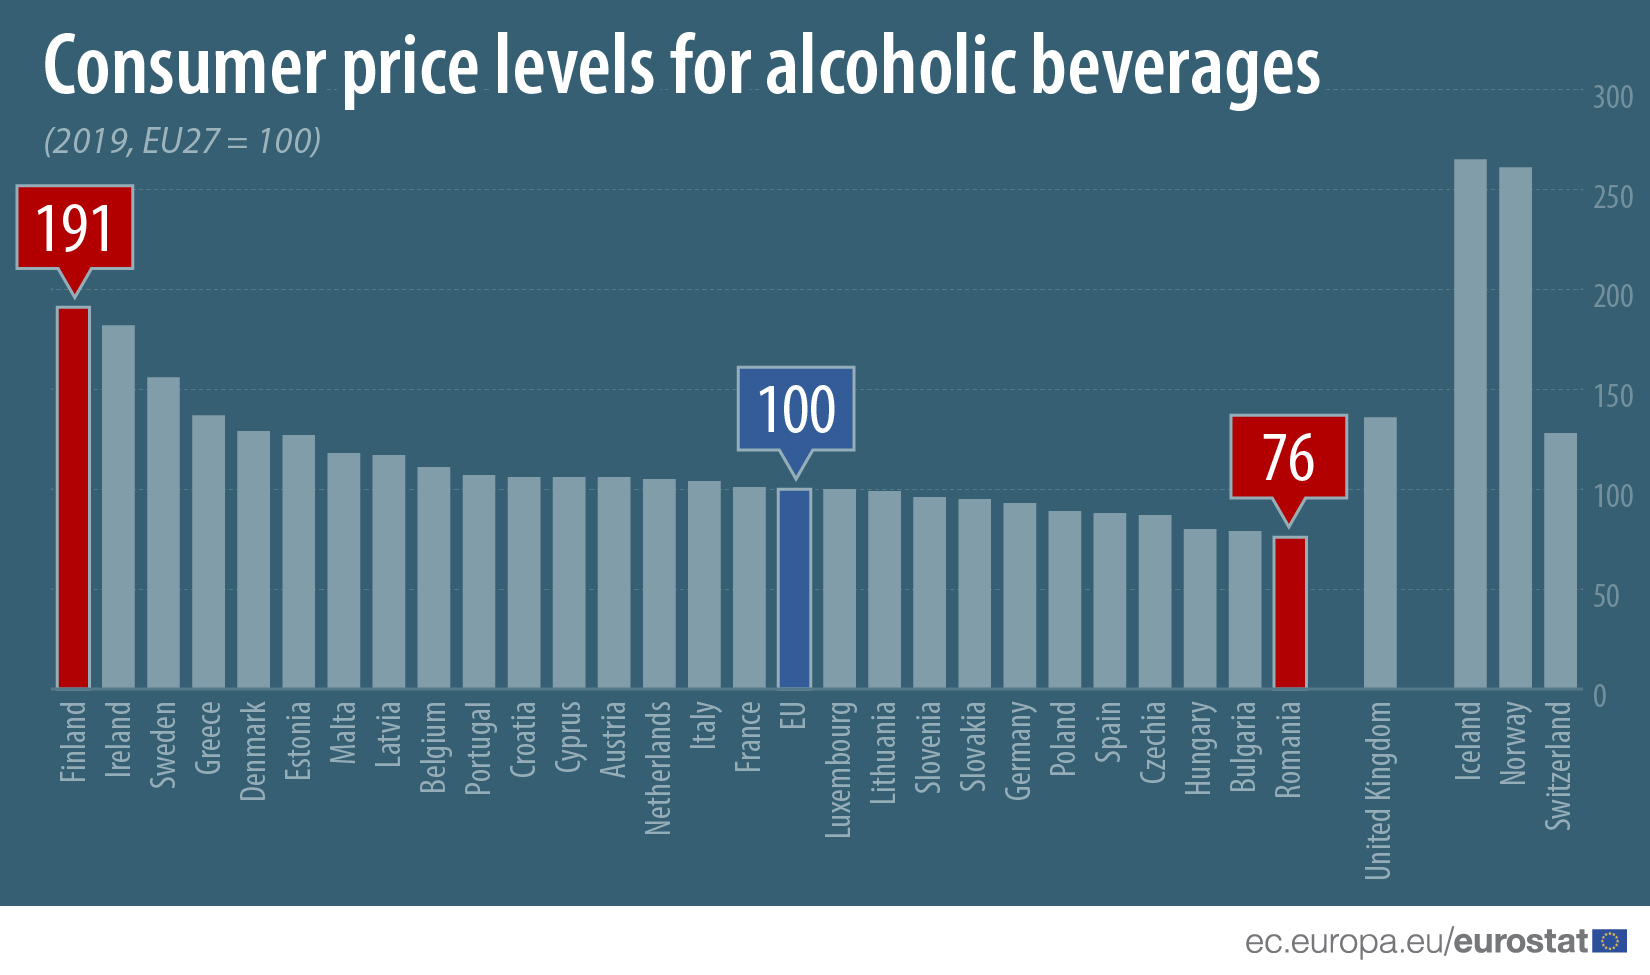 Consumer price levels for alcoholic beverages, 2019